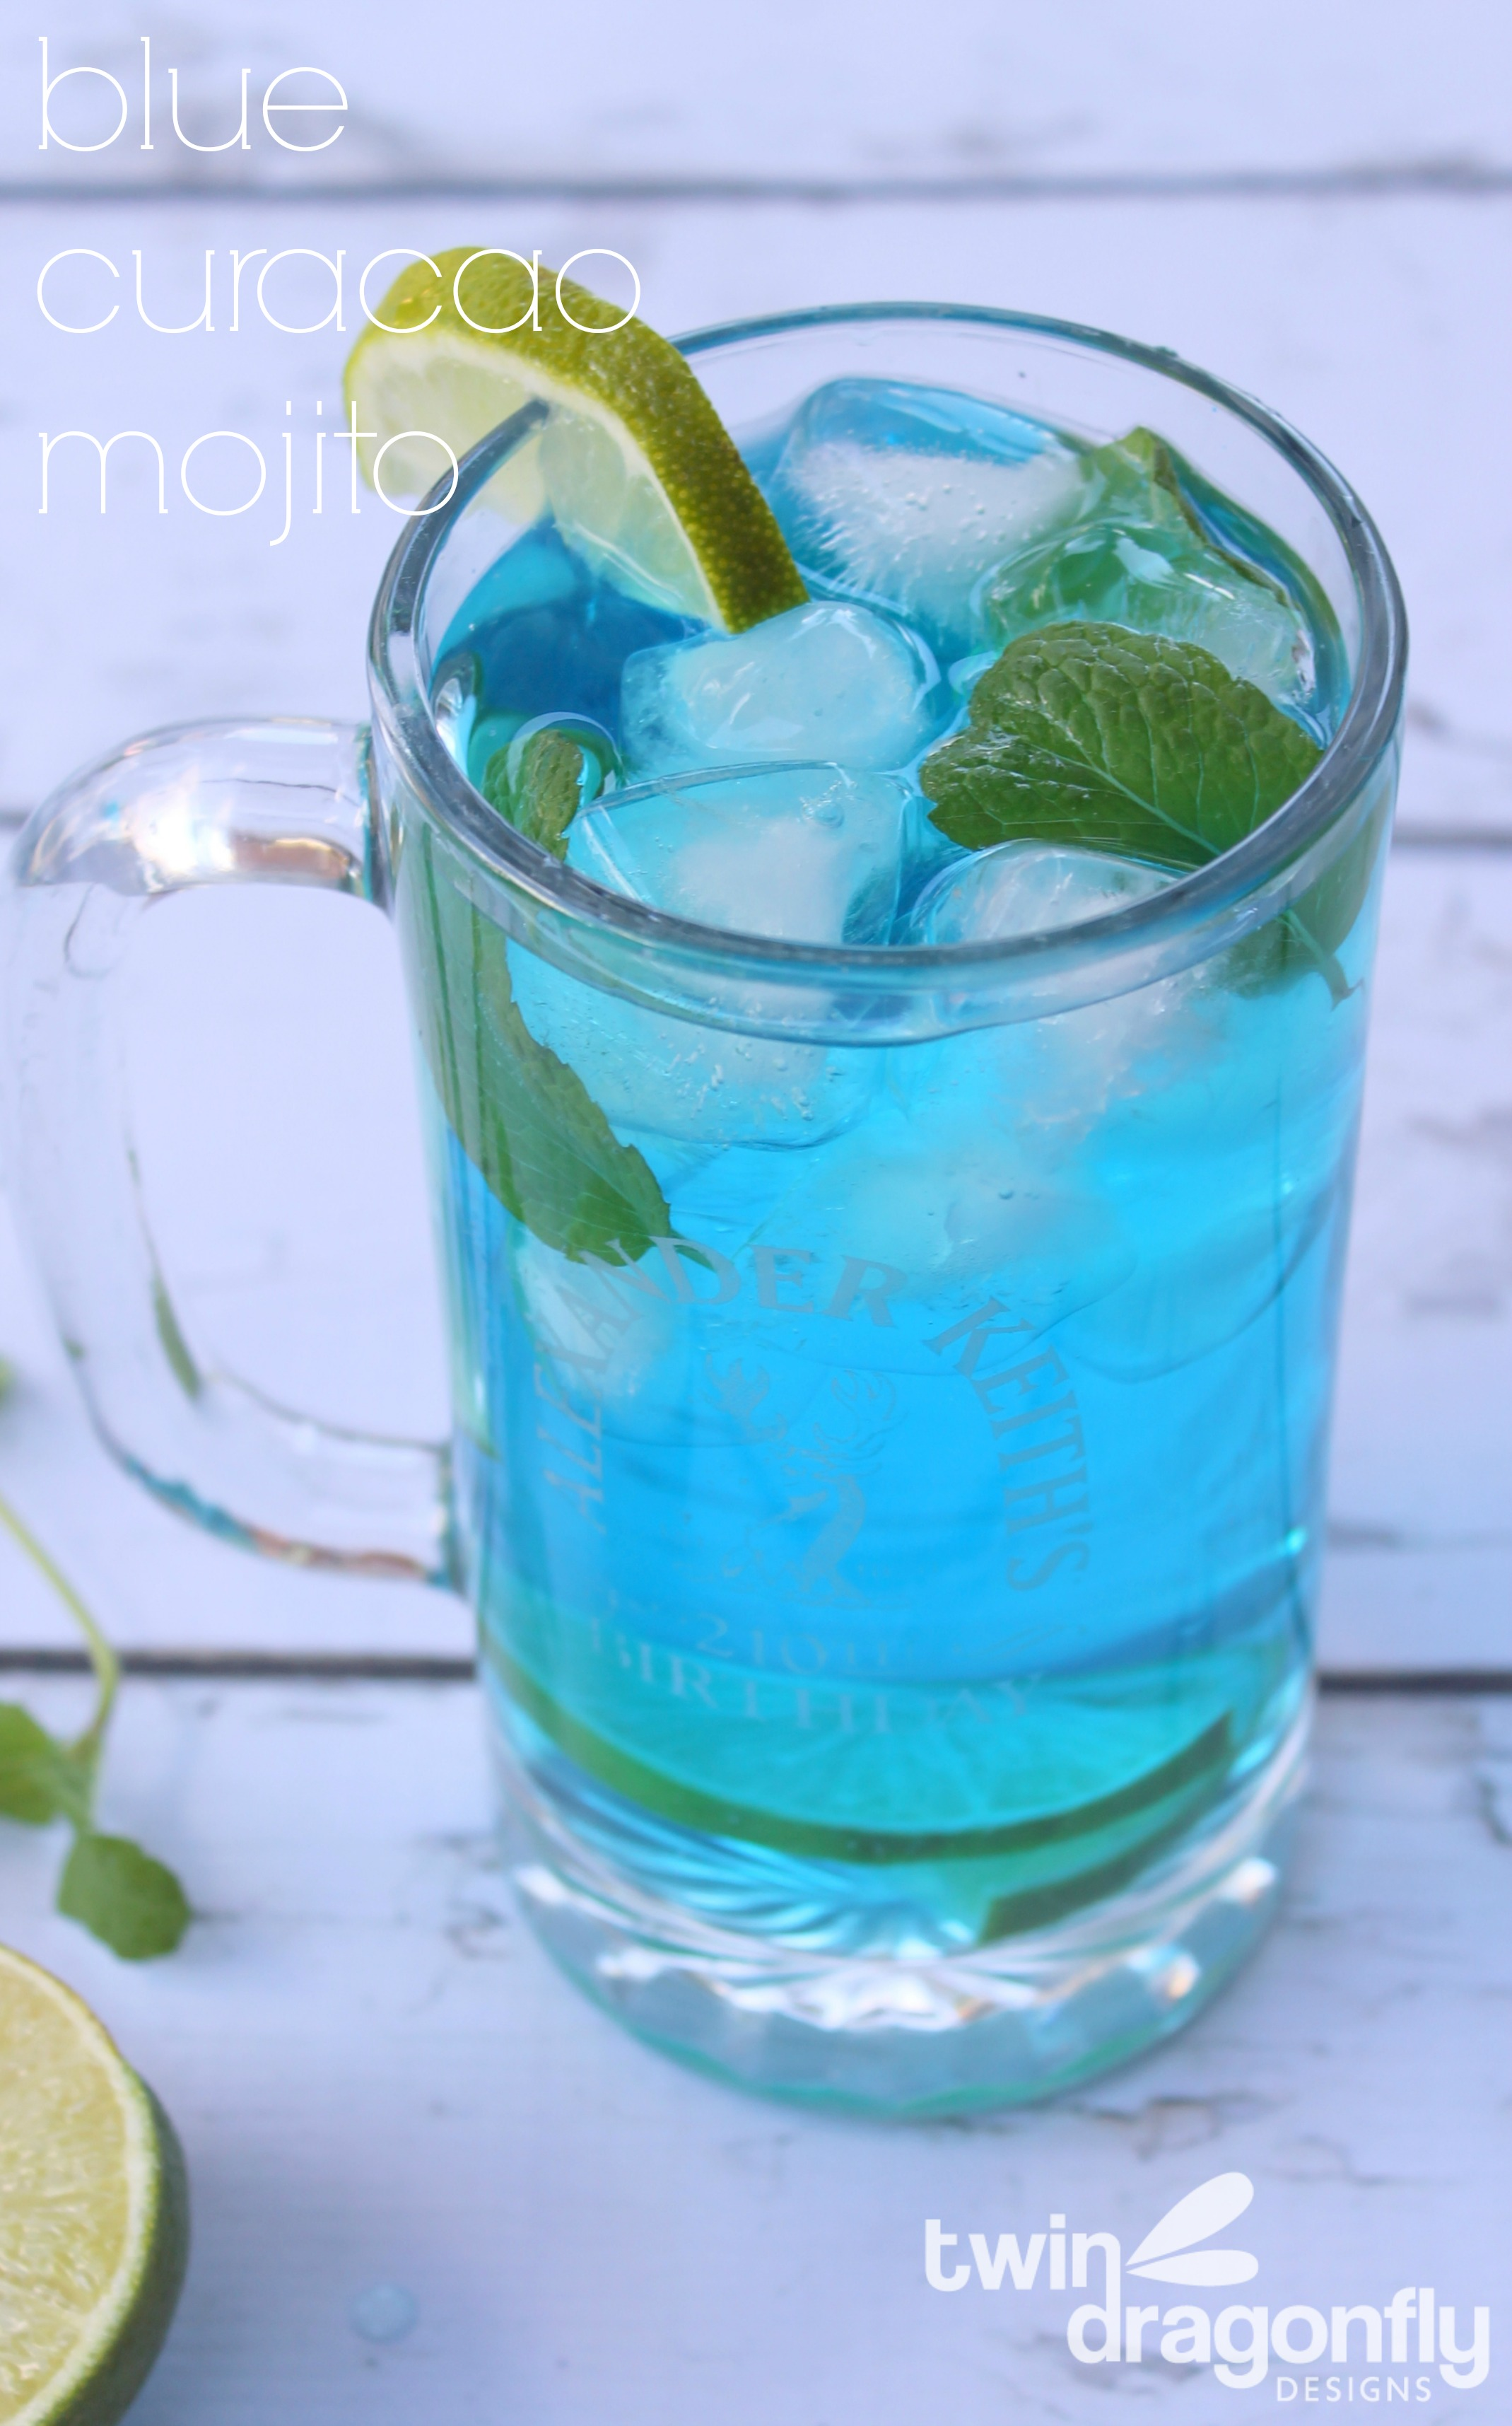 Blue Curacao Mojito » Dragonfly Designs